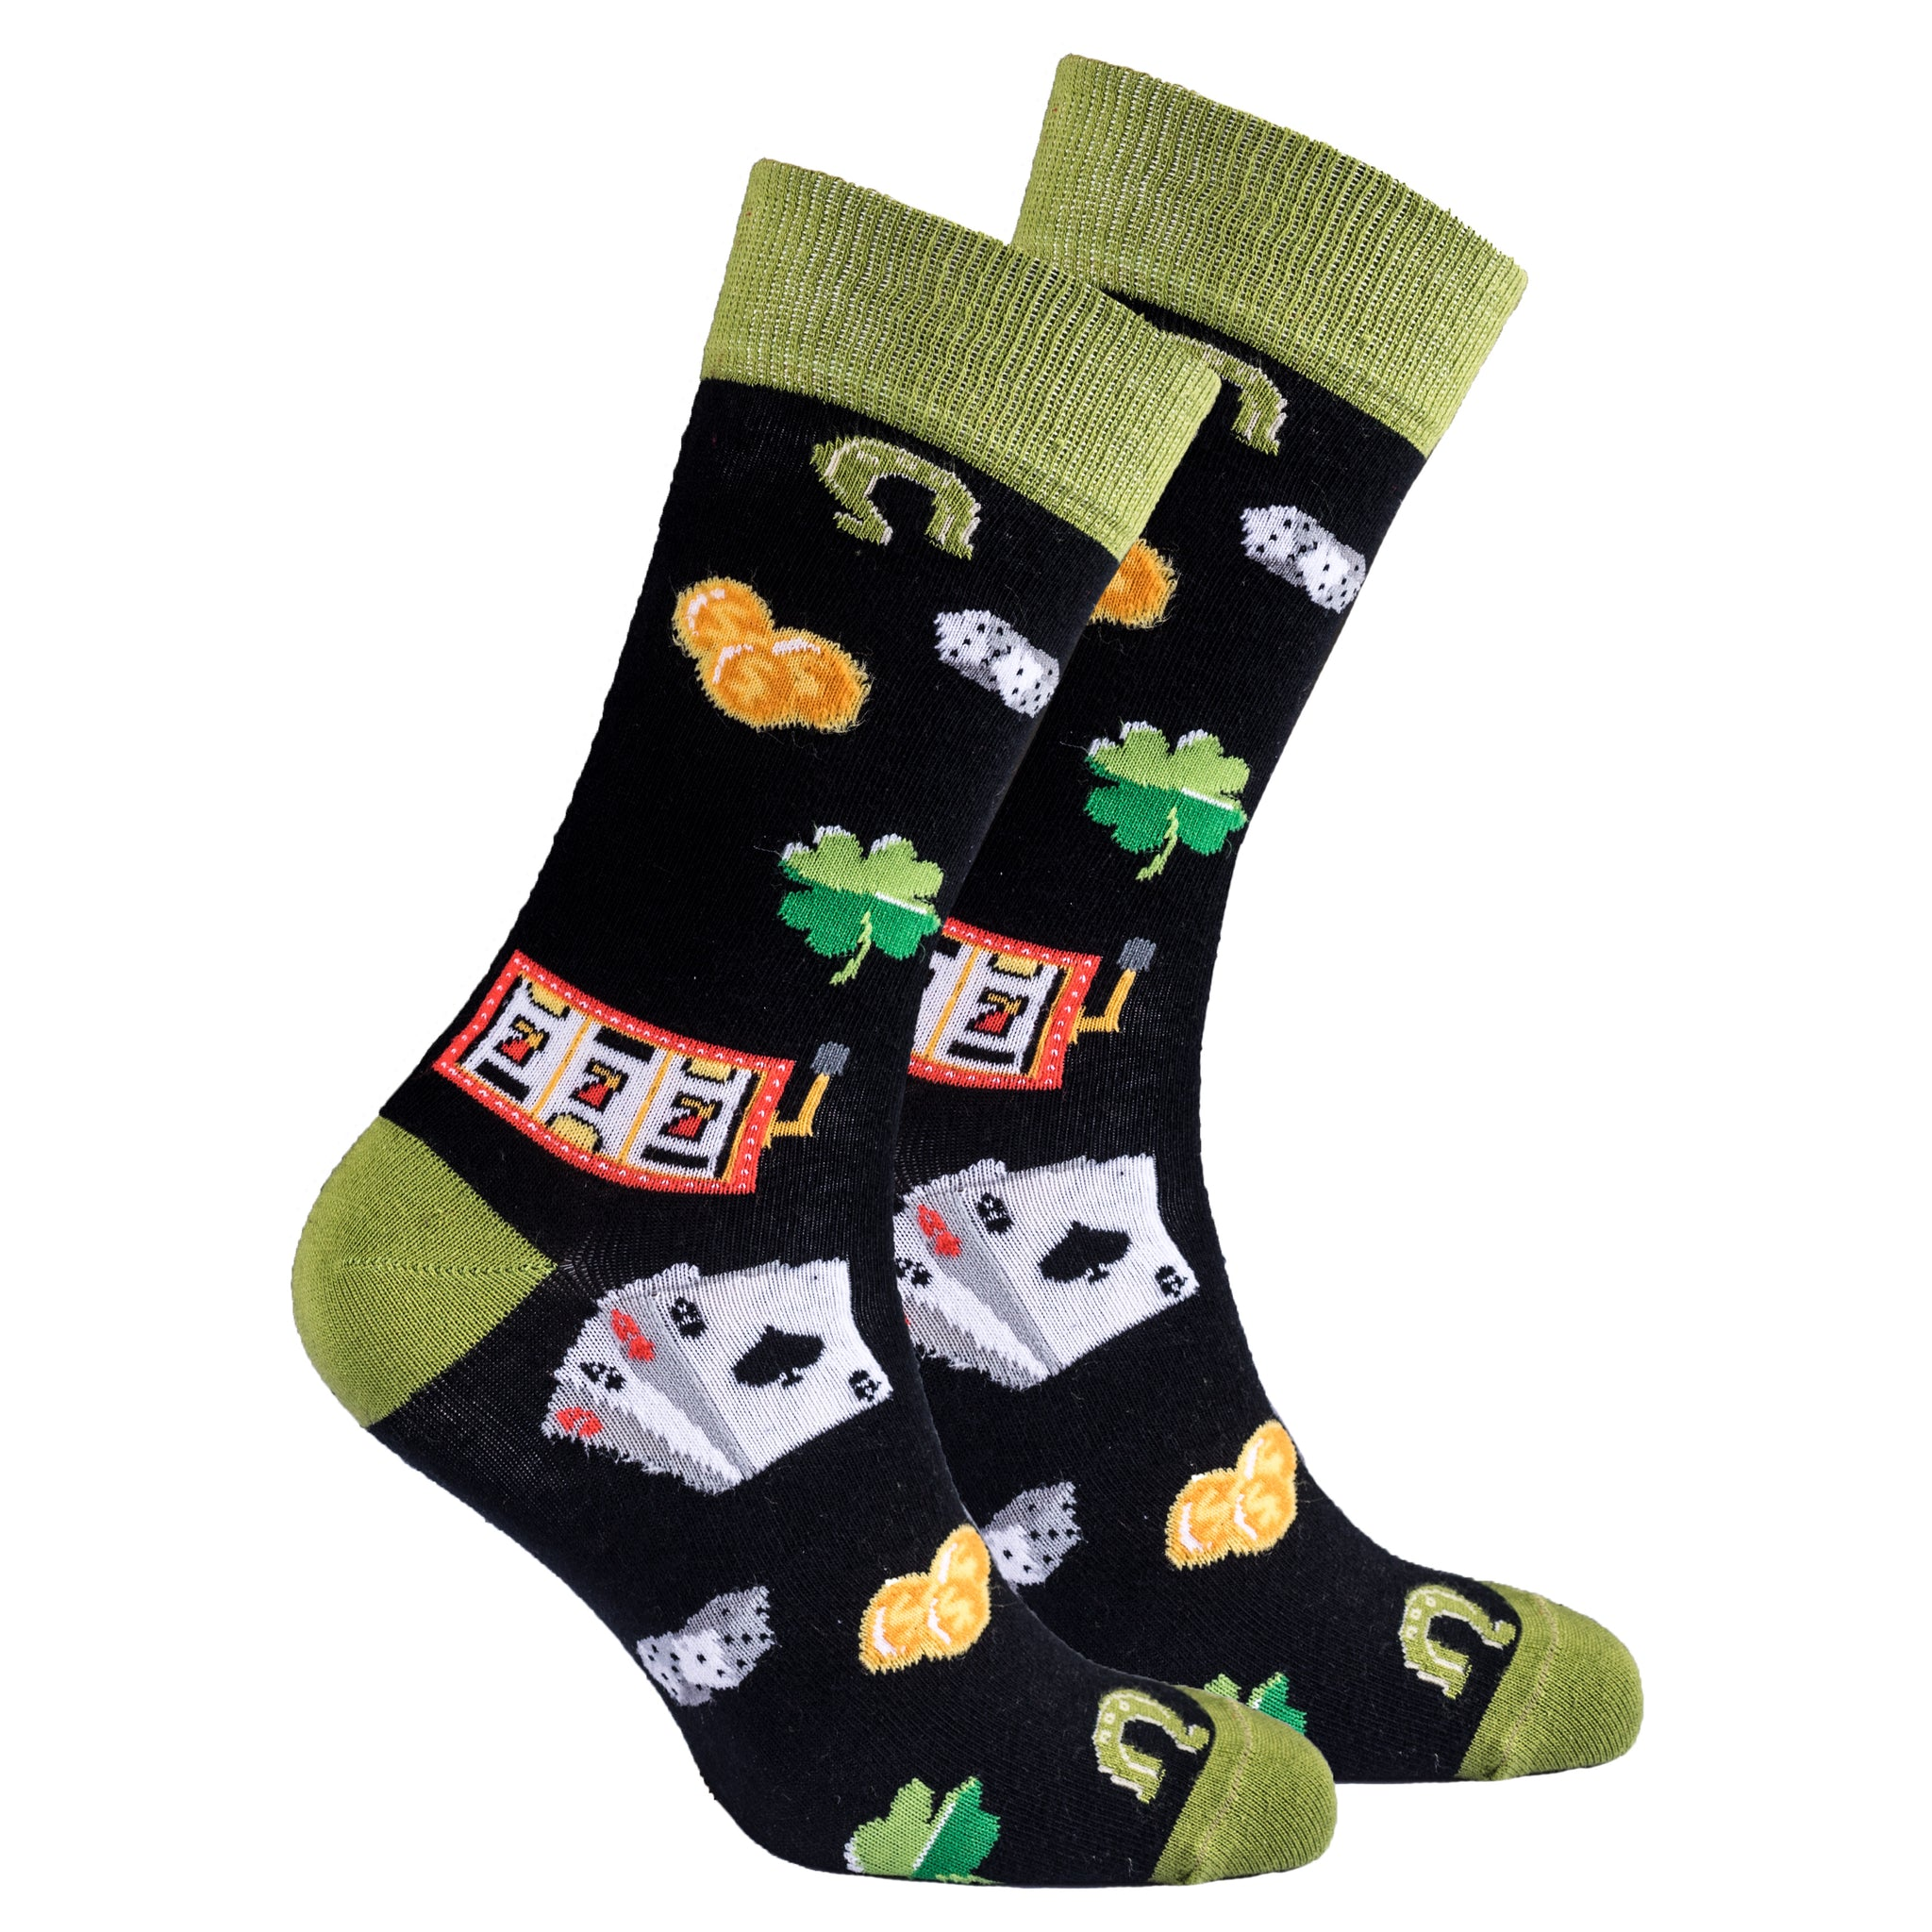 Men's Gambling Socks